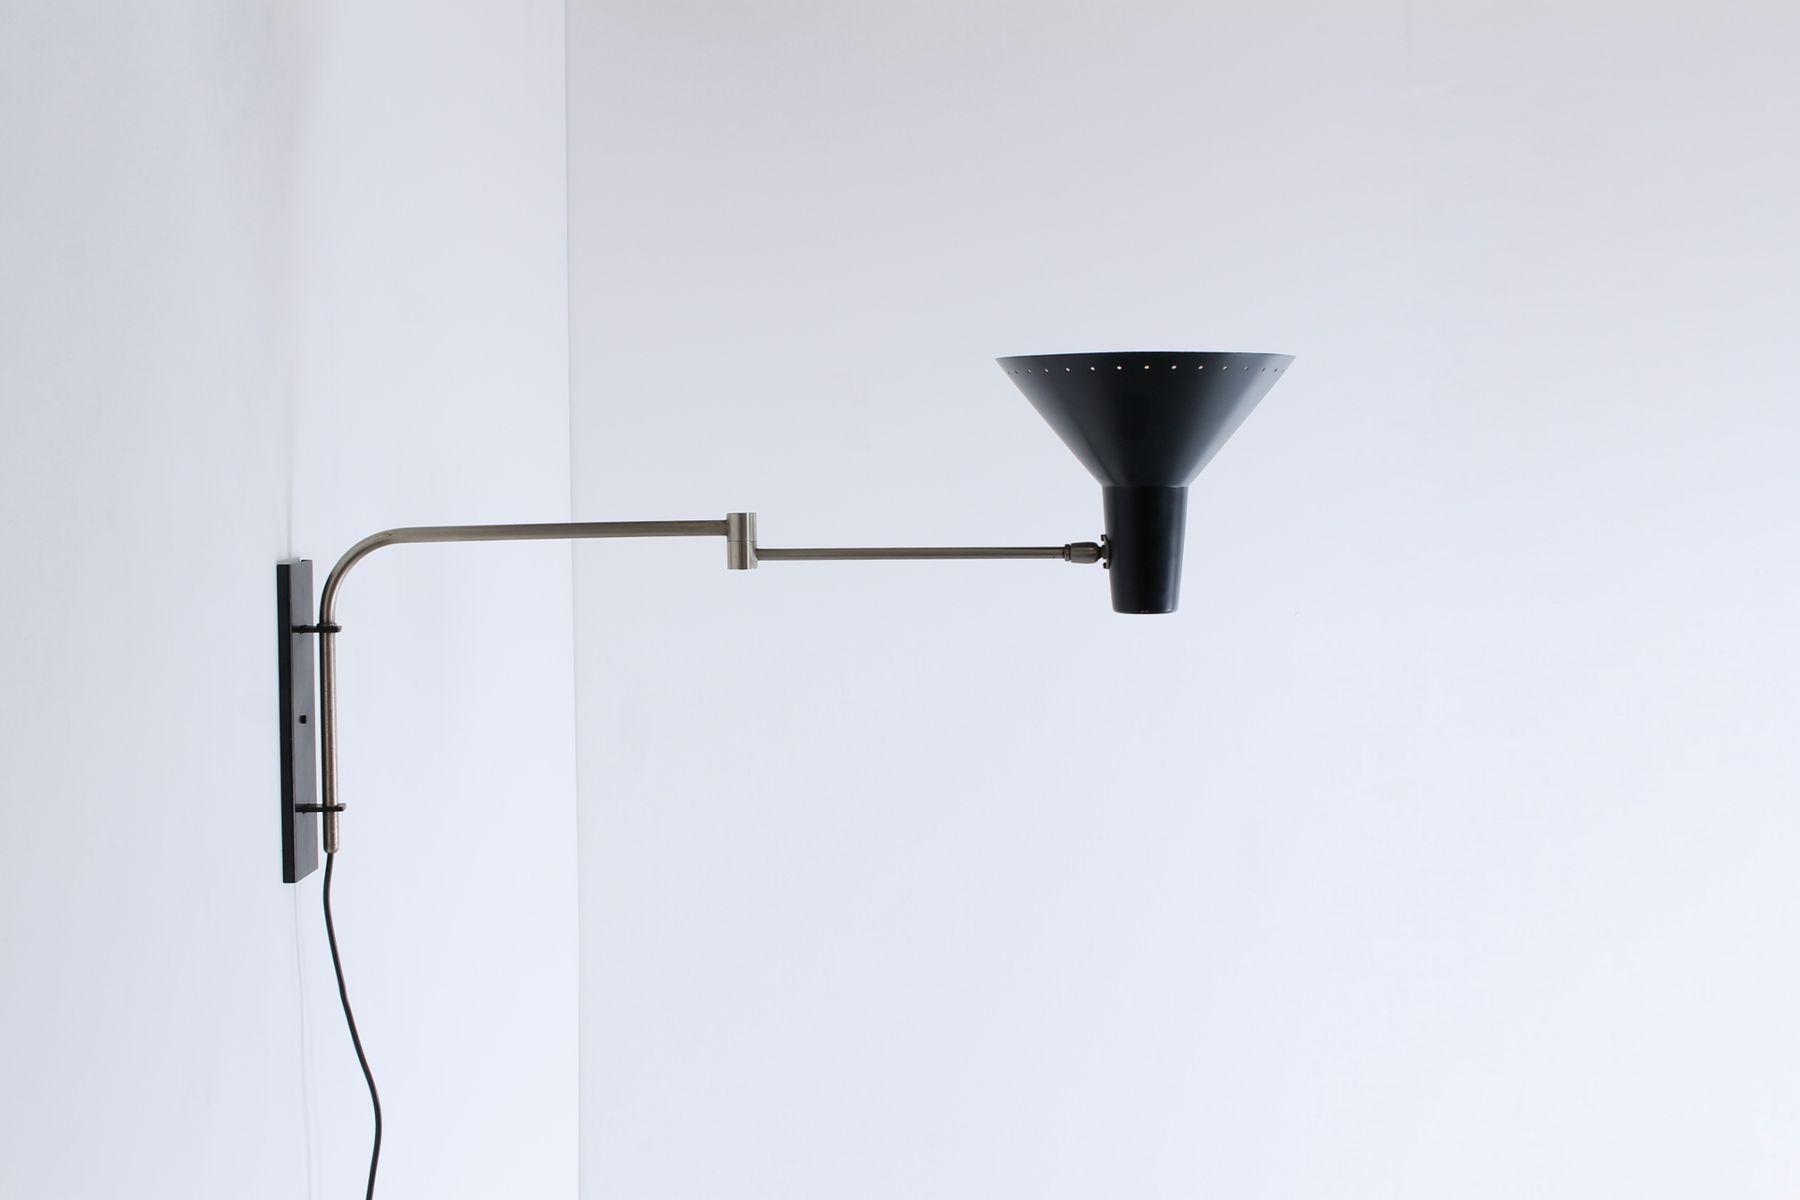 Wall Mounted Industrial Lights : Wall Mounted Swinging Arm Industrial Light from Artimeta, 1950s for sale at Pamono